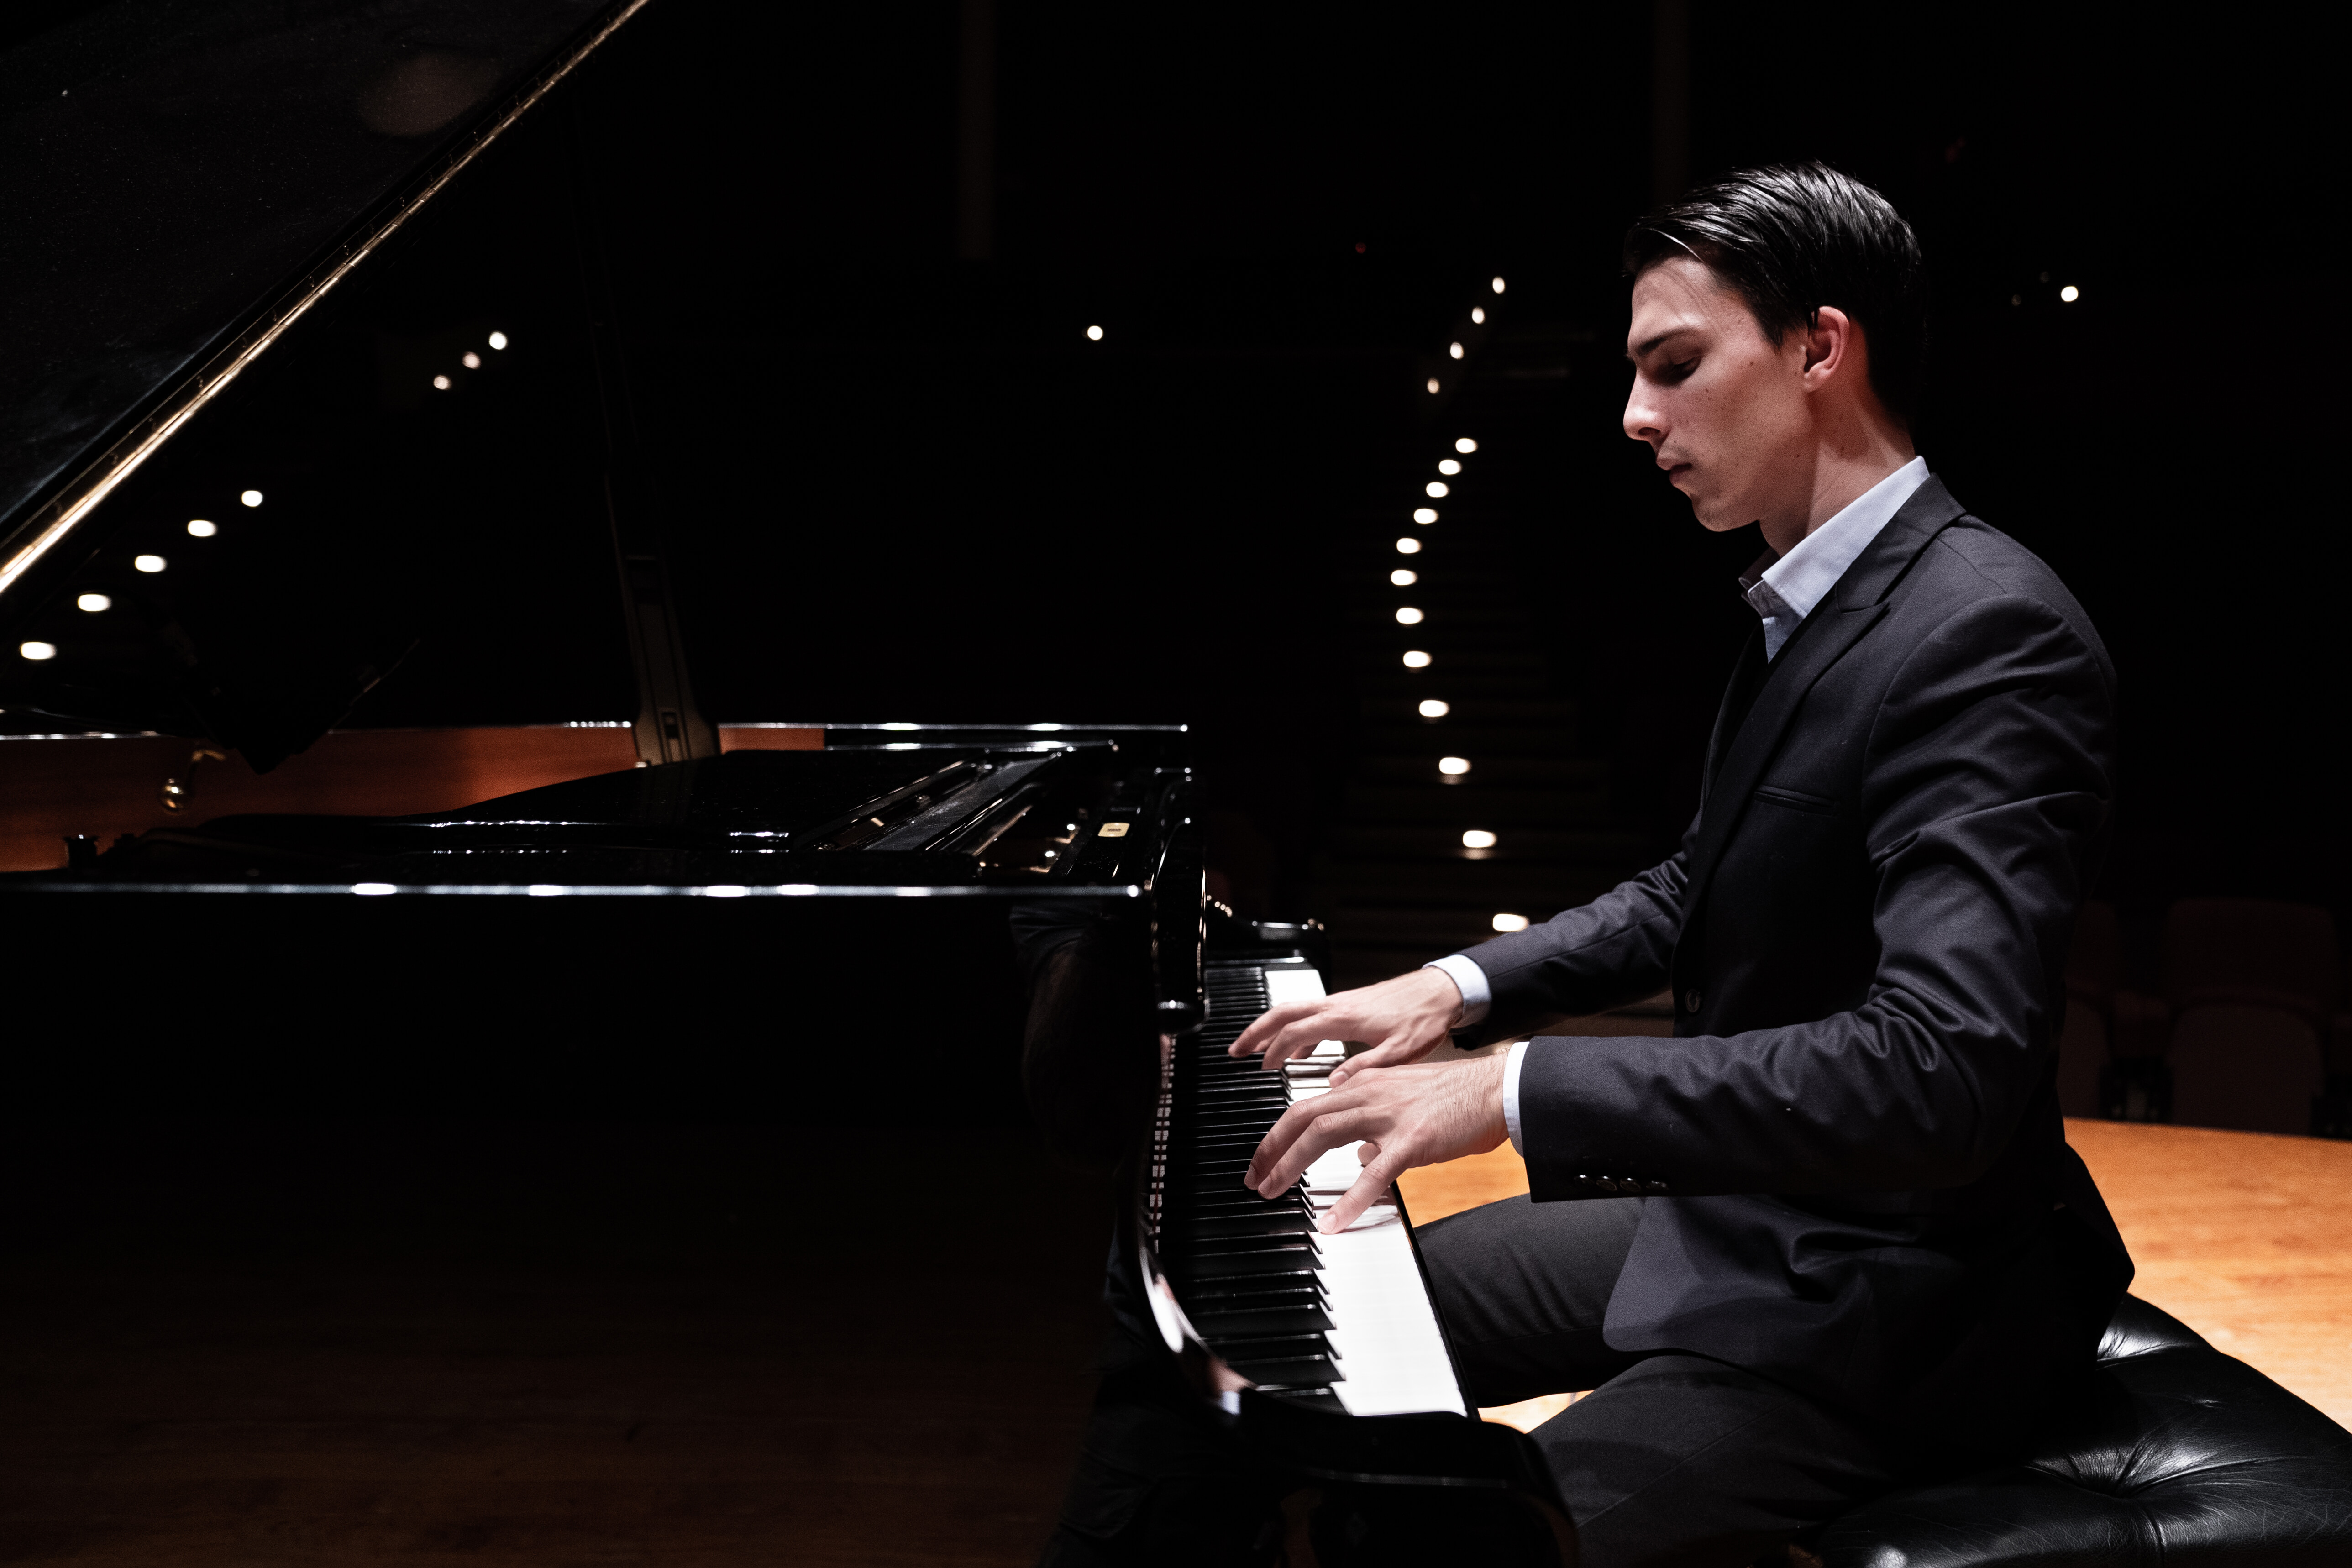 Performer, teacher and composer Liam Pitcher improvising at the piano.